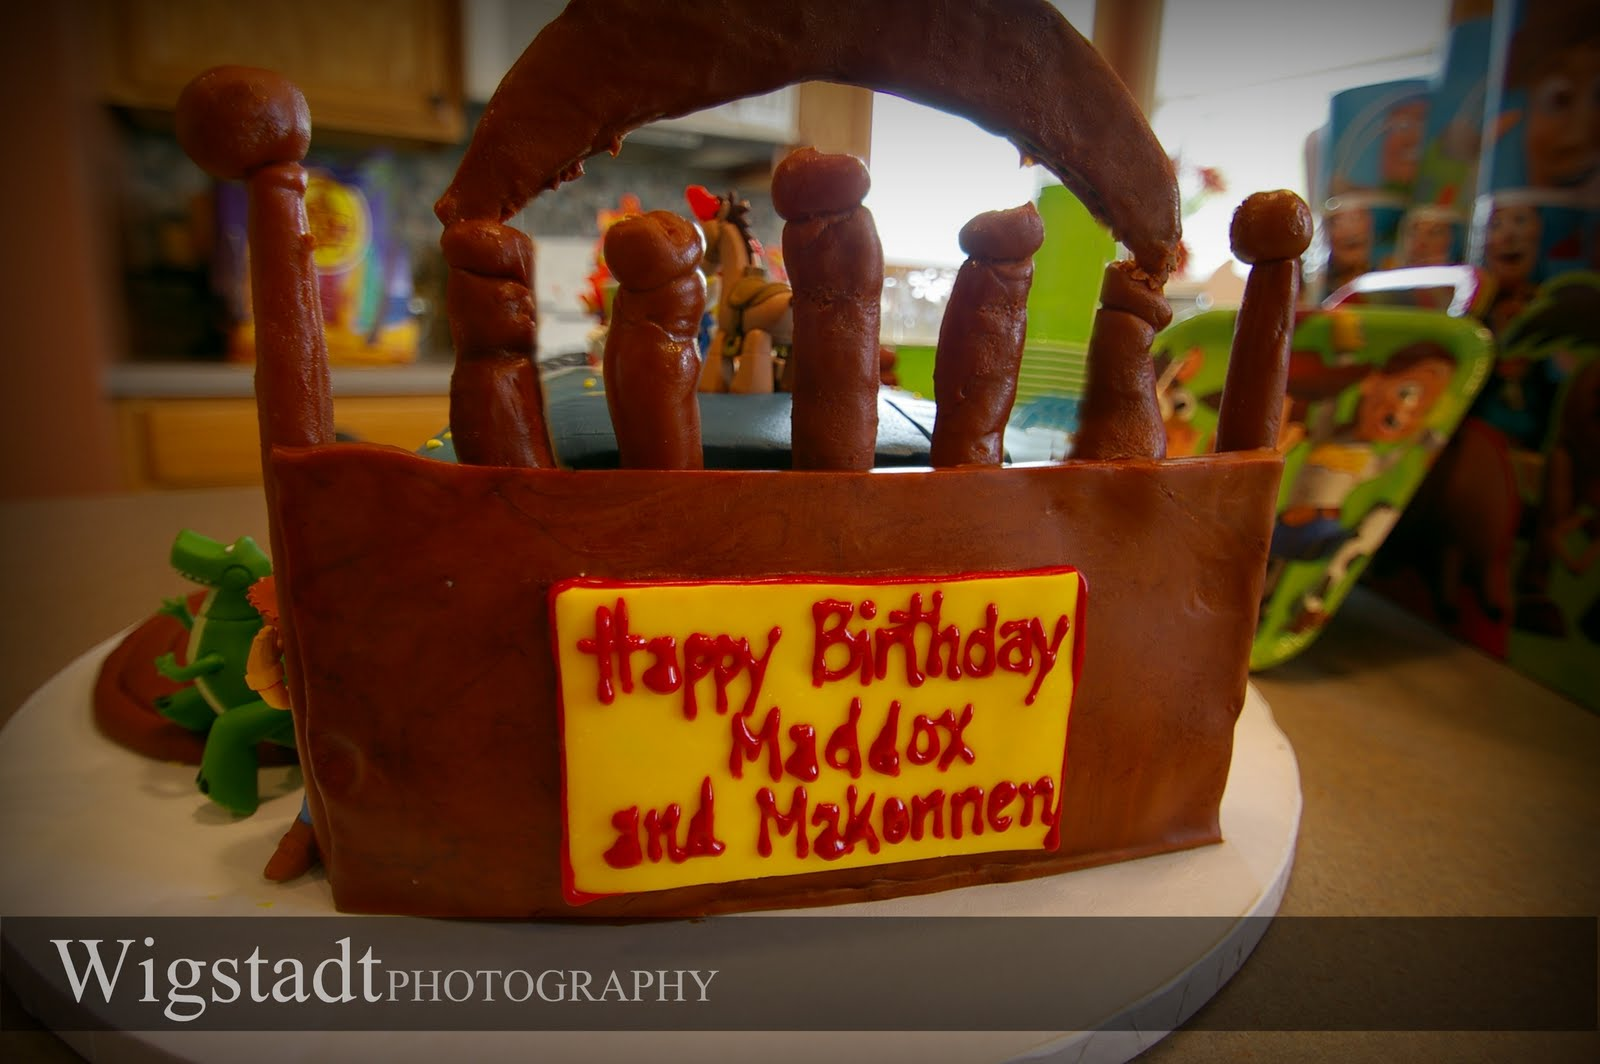 Wigstadt Photography: A HAPPY BIRTHDAY Weekend